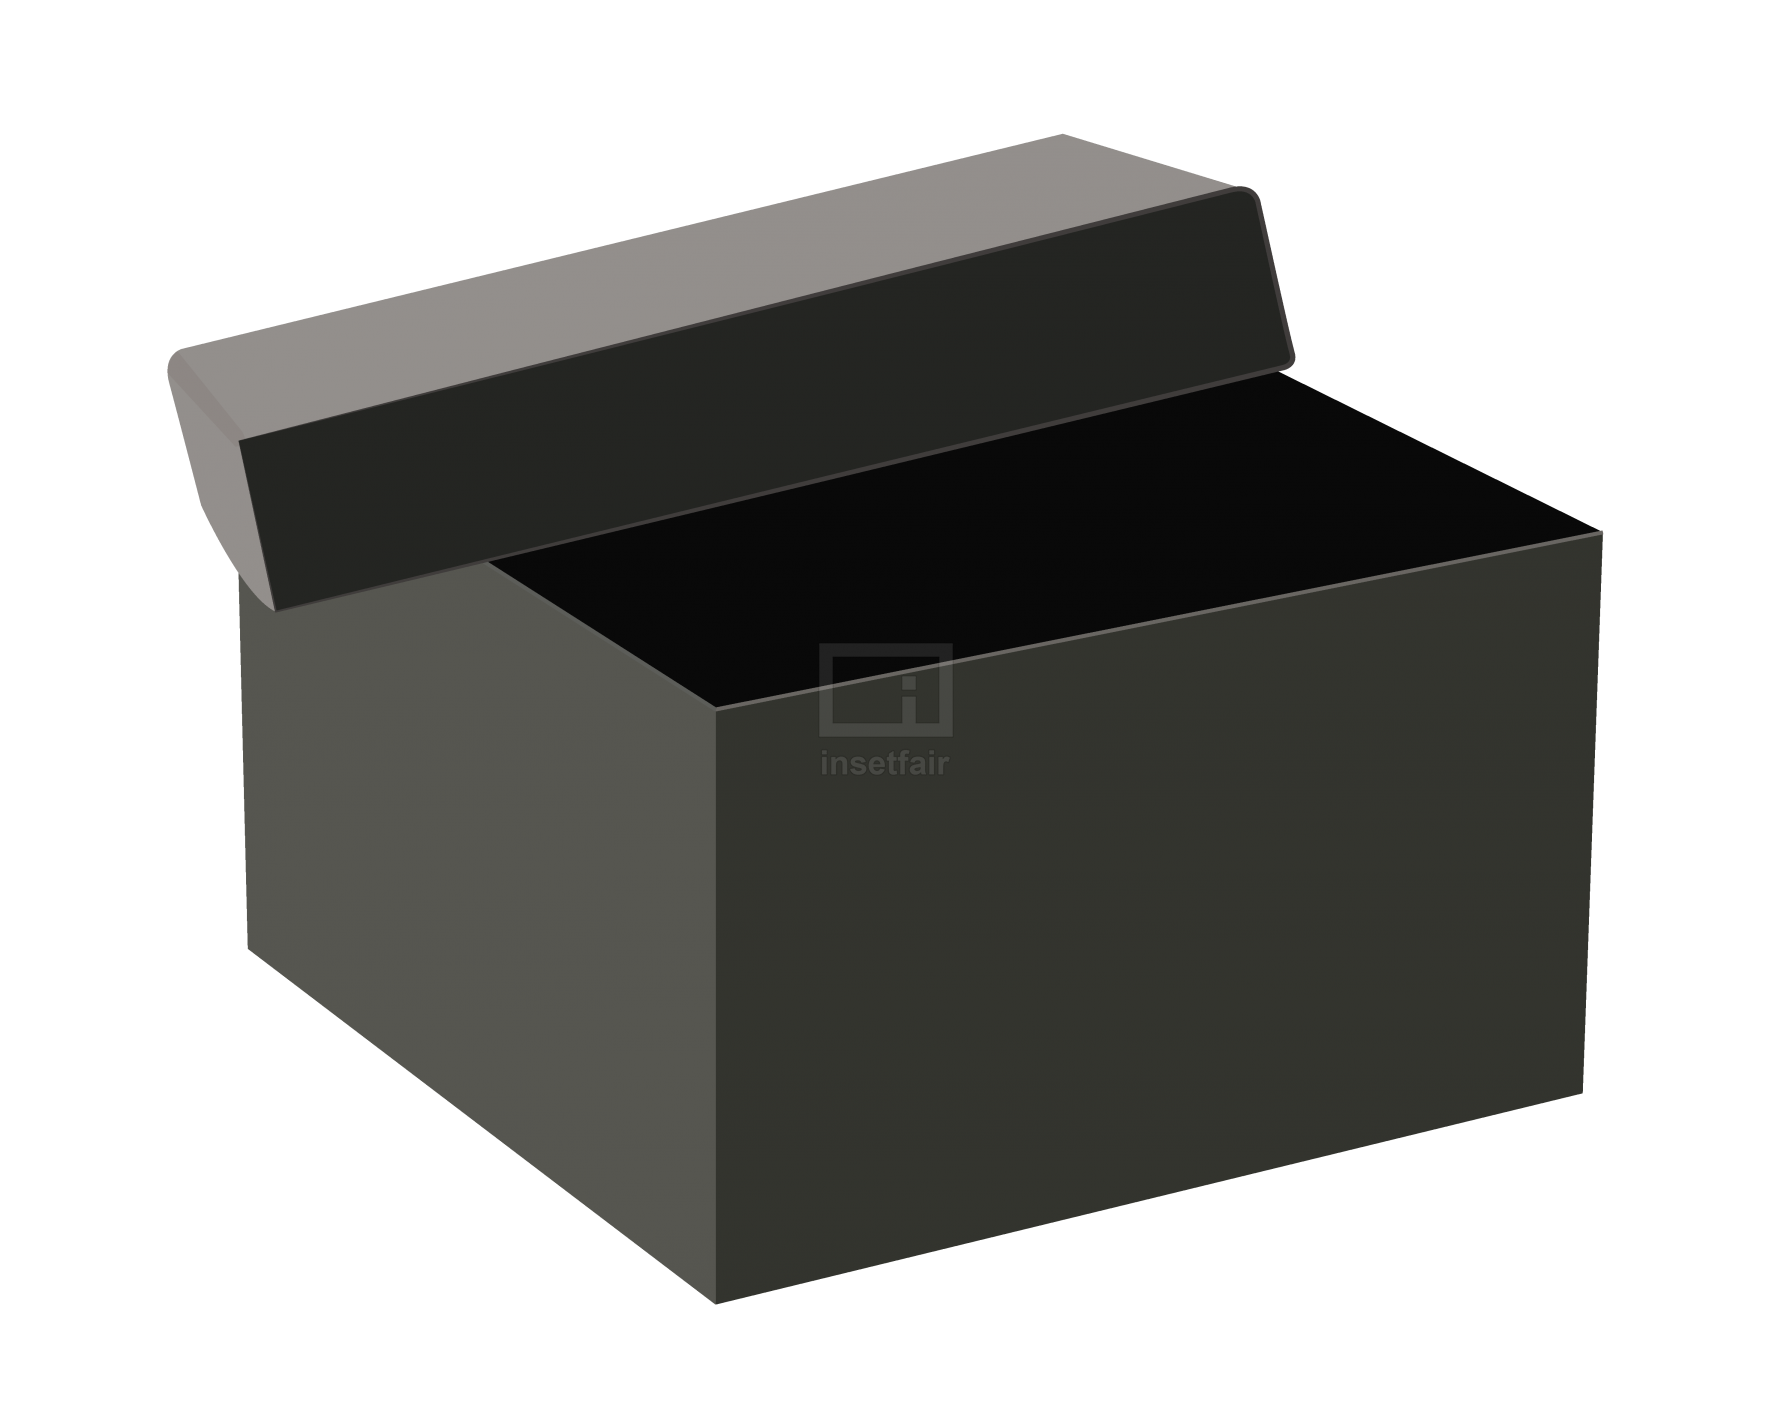 Open Black Box Stock vector Image free for commercial use